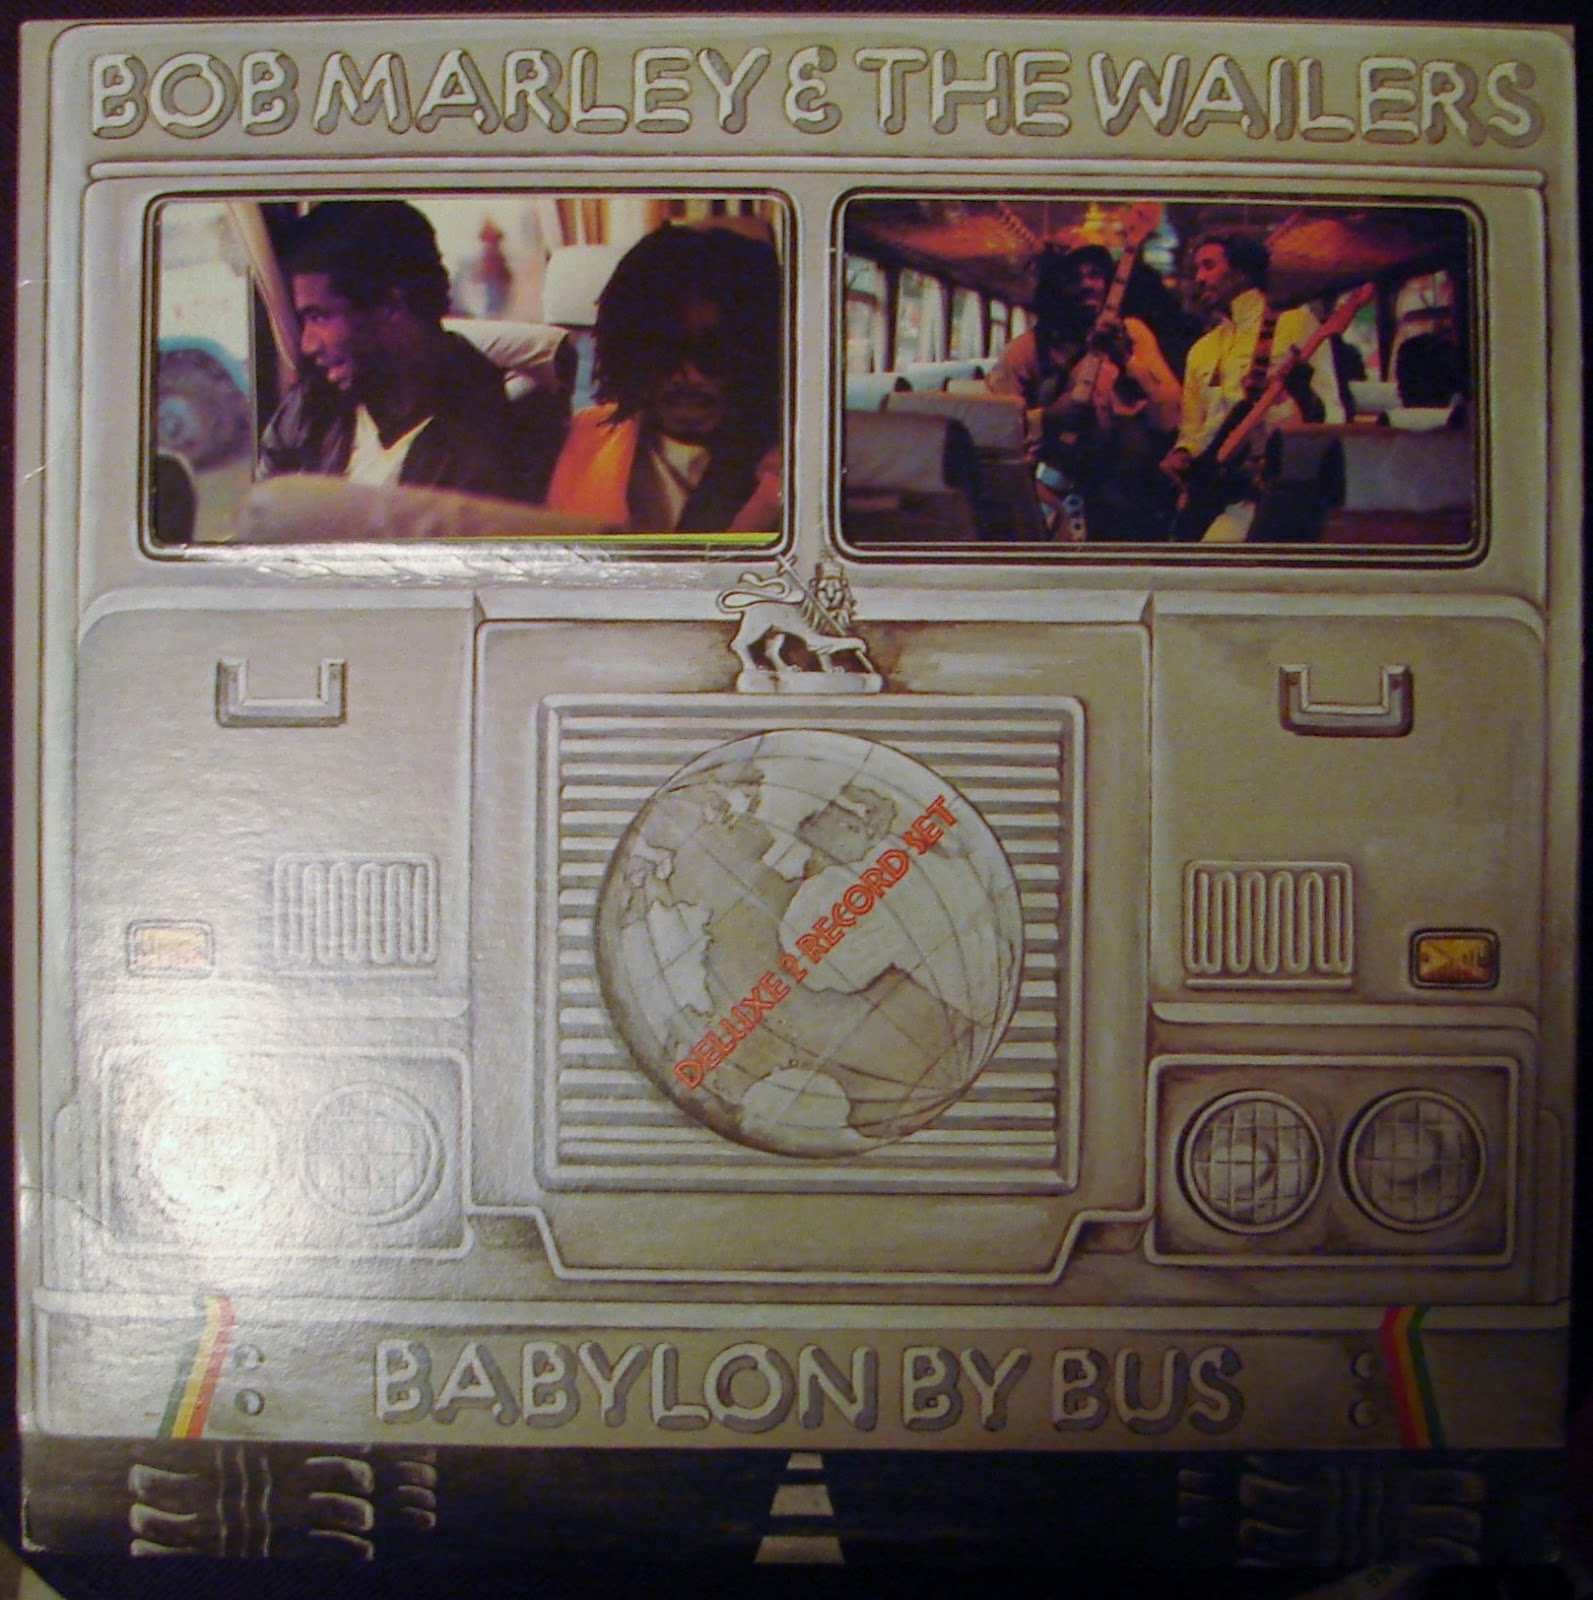 Bob Marley and The Wailers - Babylon By Bus (cover)